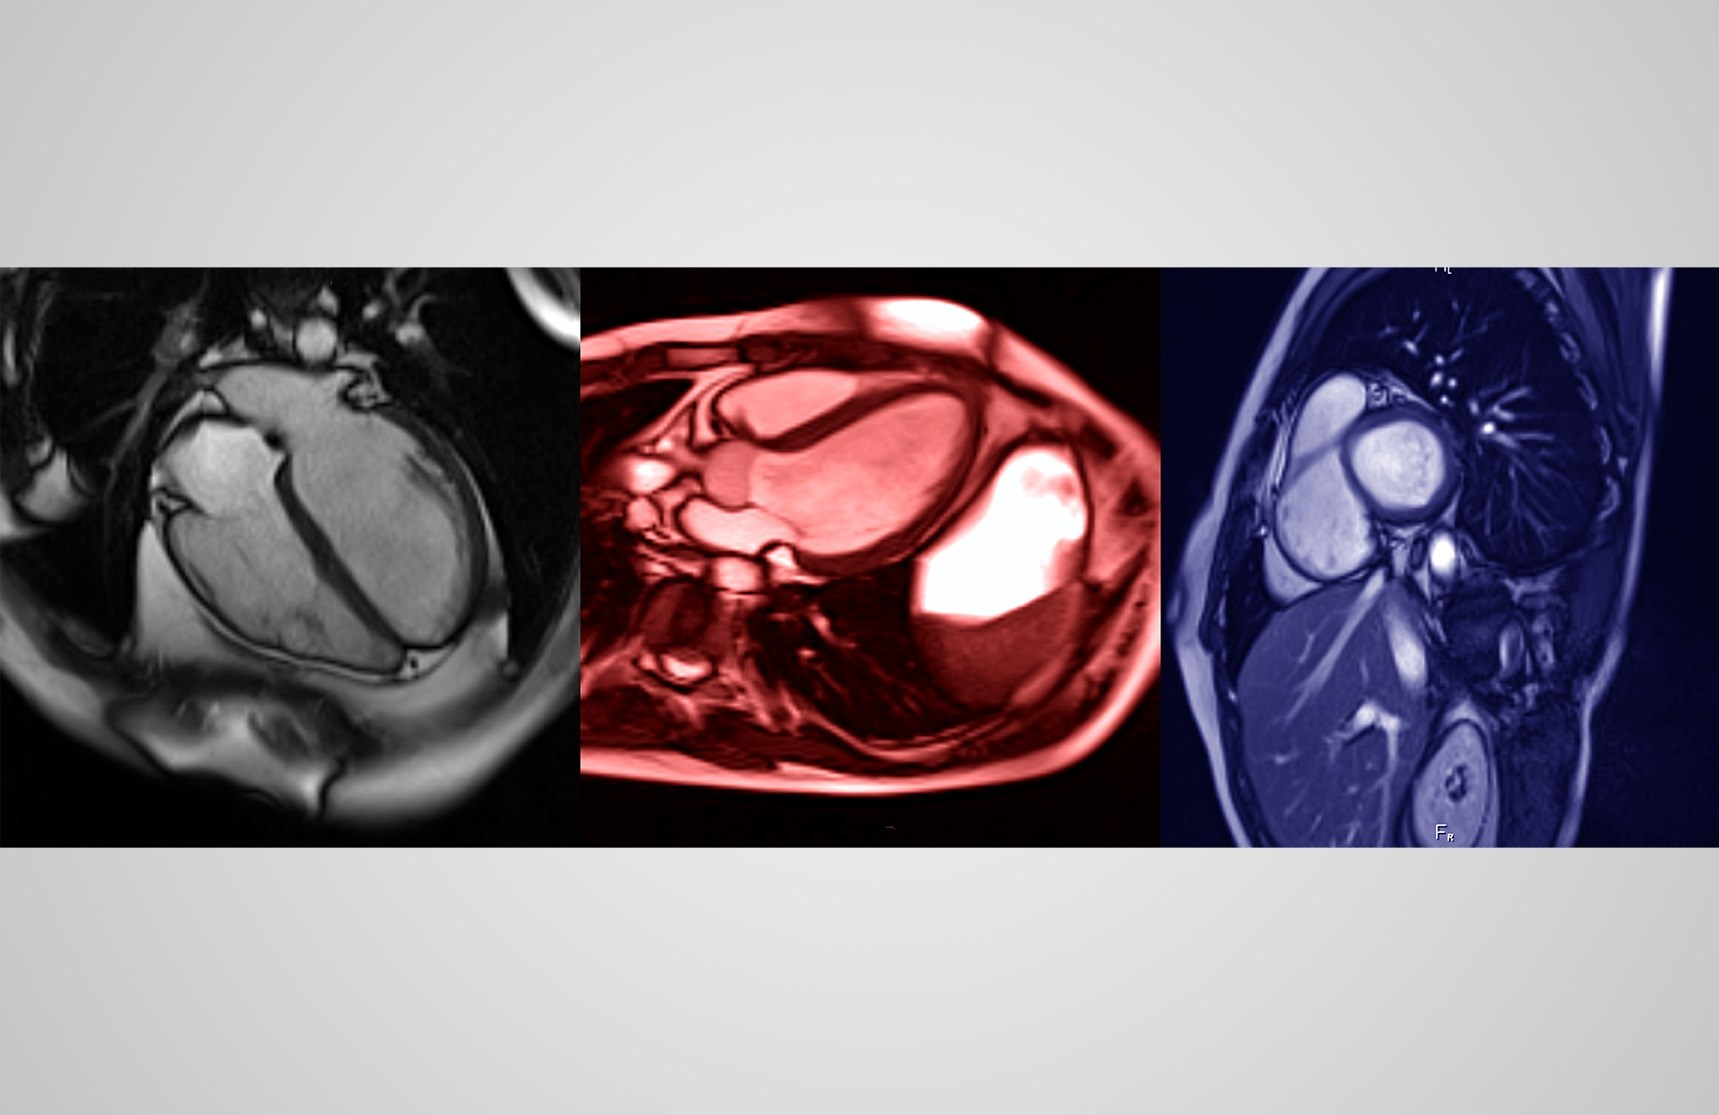 Rapid Cardiac Magnetic Resonance With Contrast Feasible in Developing World